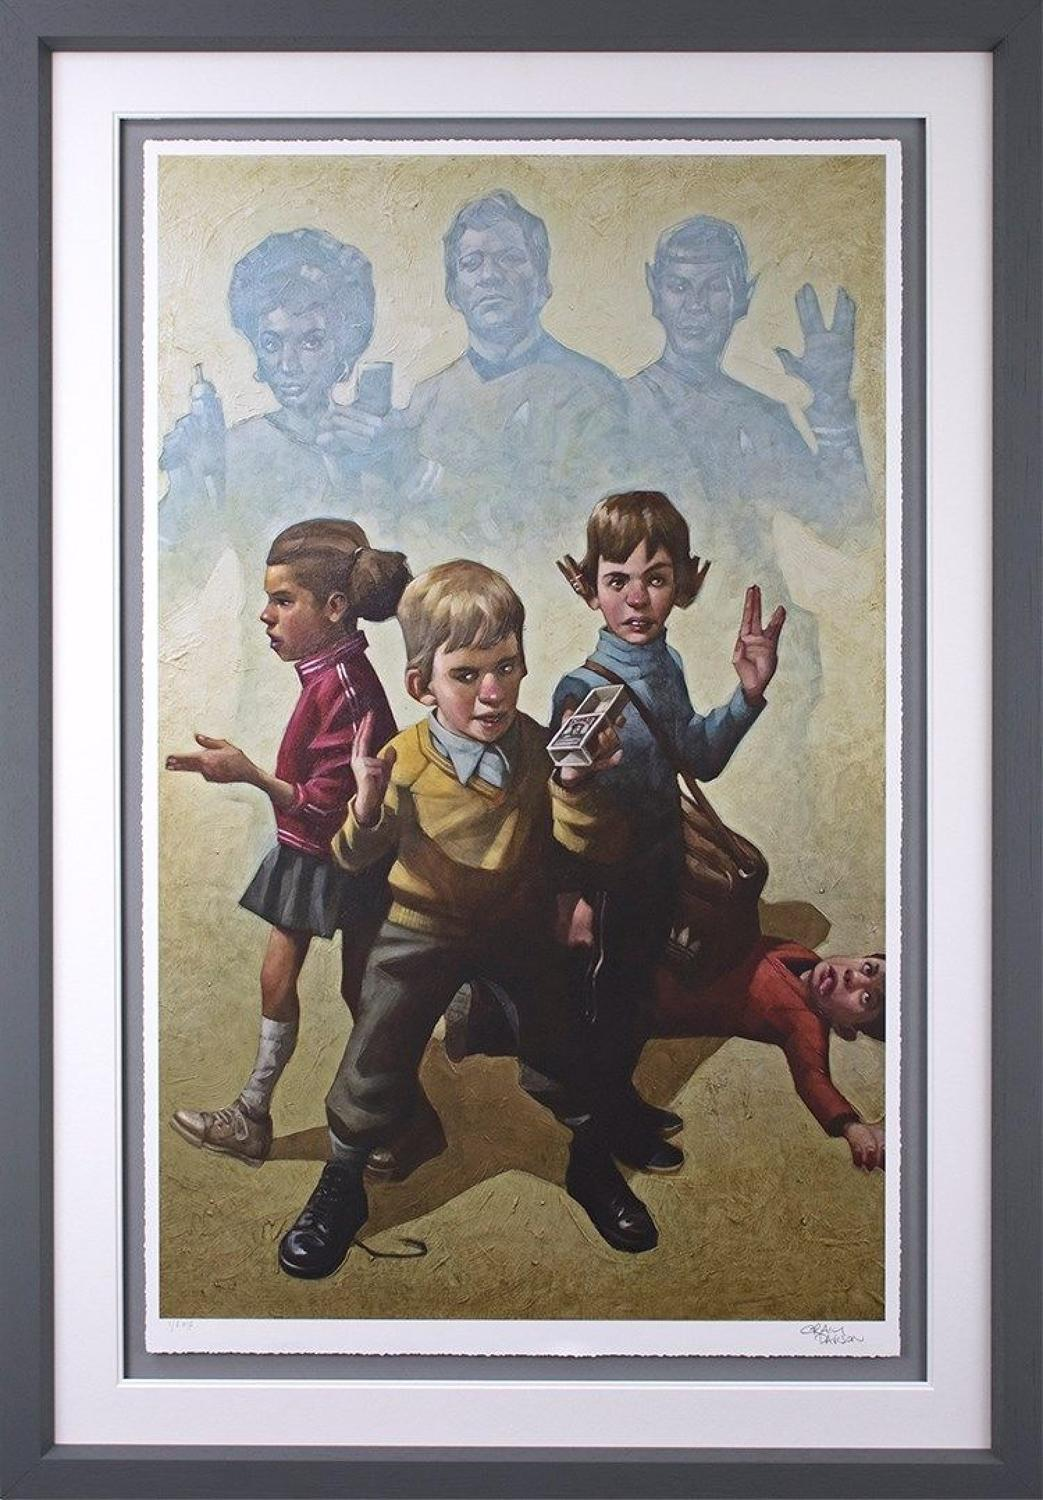 Phasers to Stun - Framed Art Print by Craig Davison